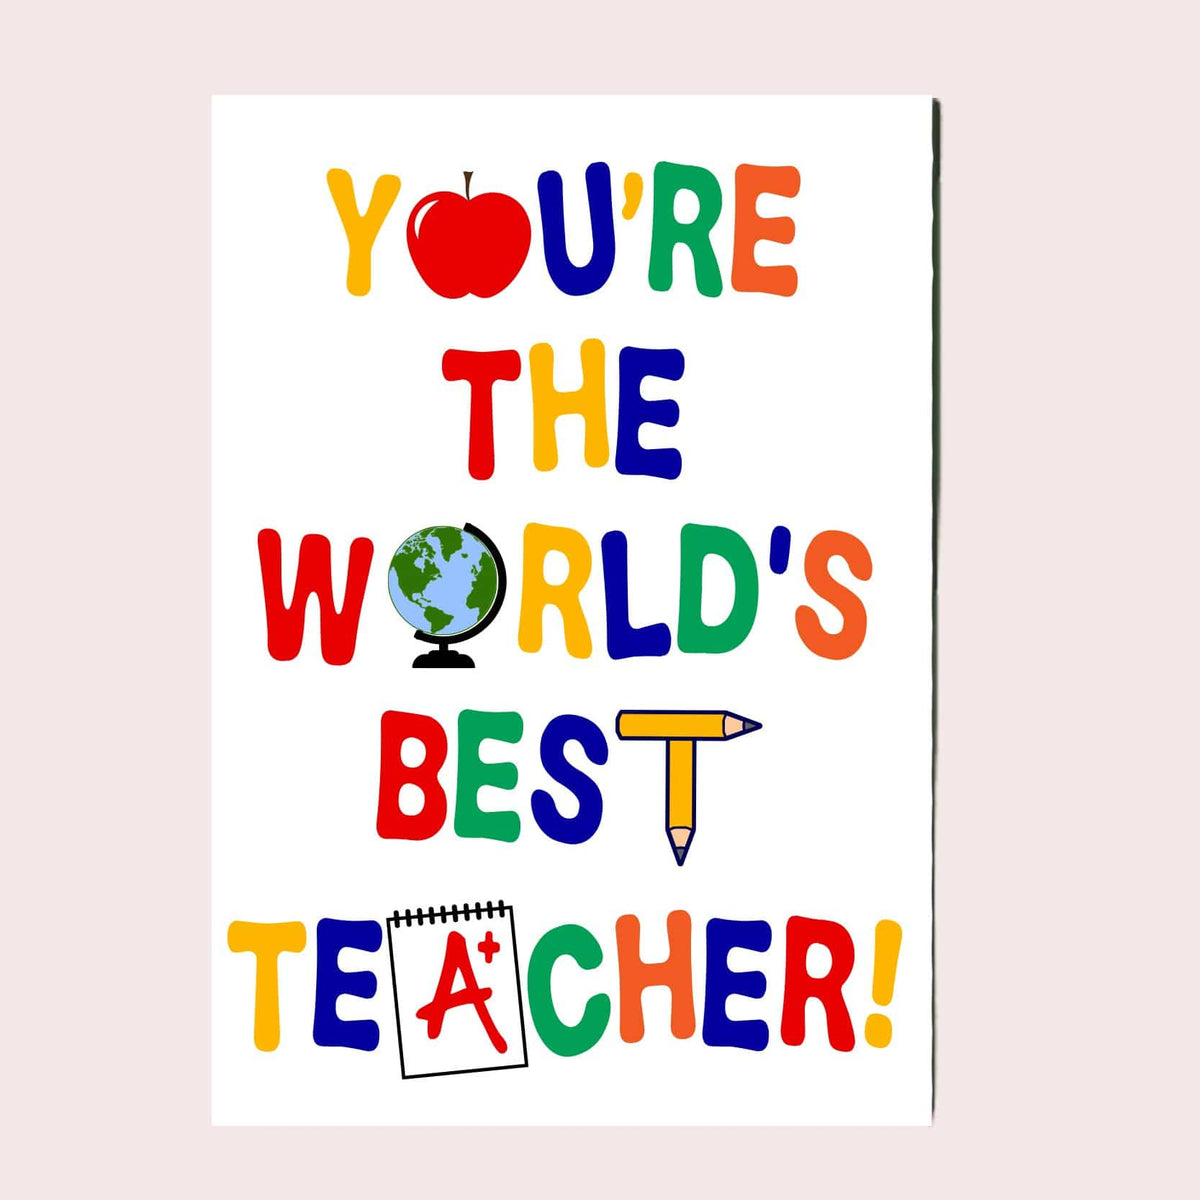 youre the worlds best teacher greeting card